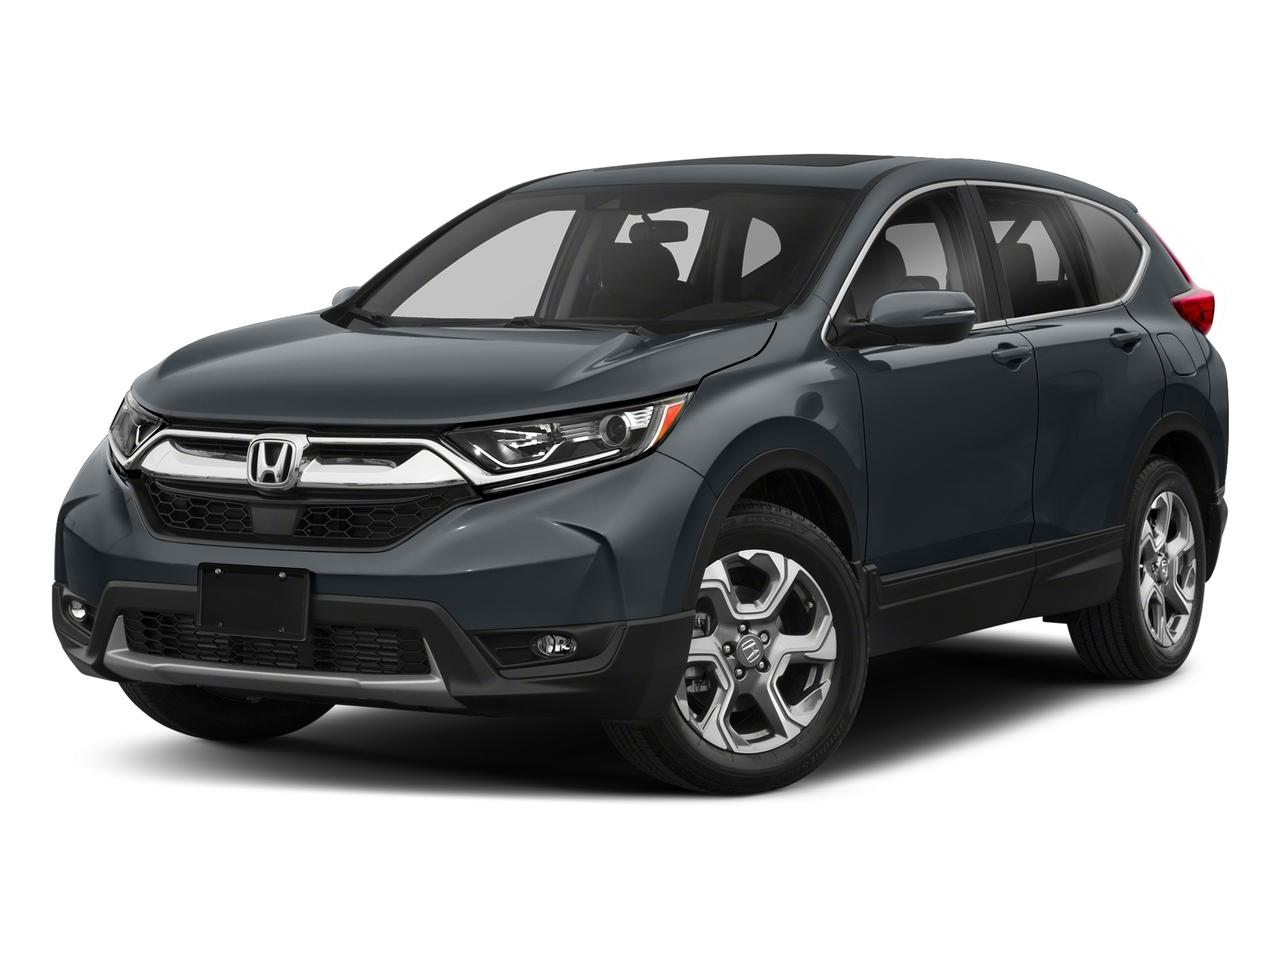 2018 Honda CR-V Vehicle Photo in Trevose, PA 19053-4984